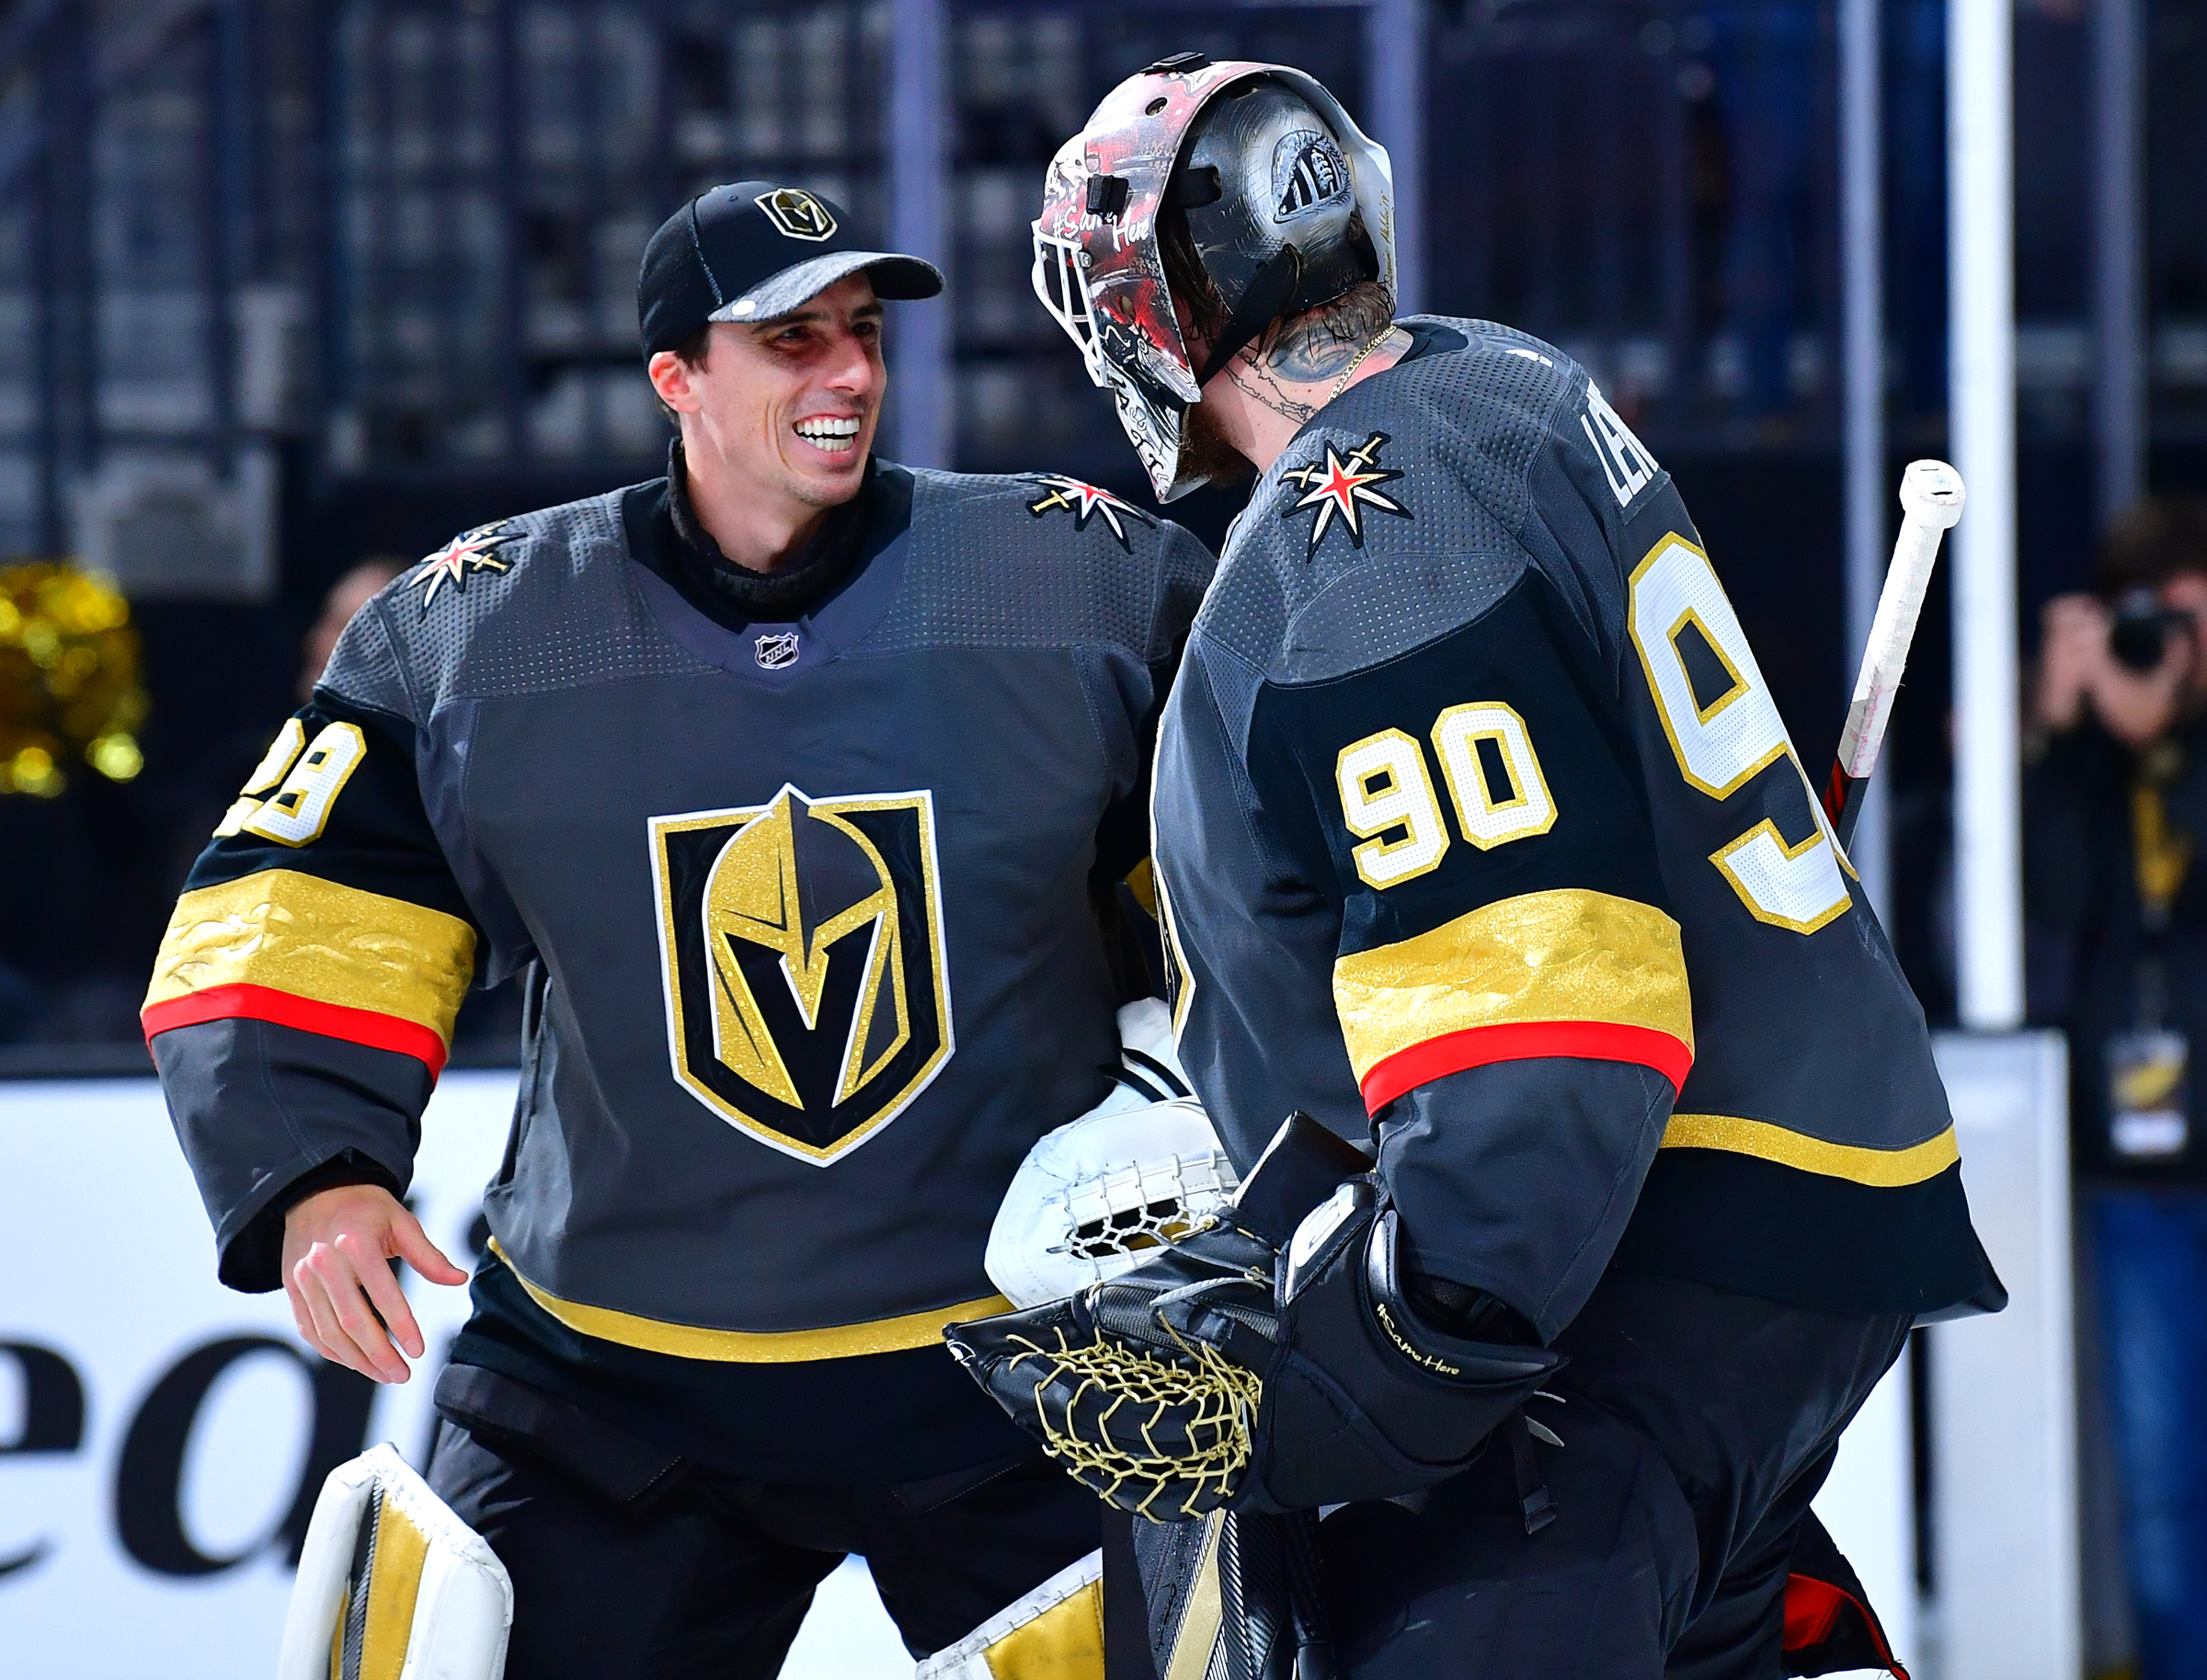 Las Vegas, Nevada, USA; Vegas Golden Knights goaltender Robin Lehner is congratulated by goaltender Marc-Andre Fleury after shutting out the New Jersey Devils 3-0 game at T-Mobile Arena.